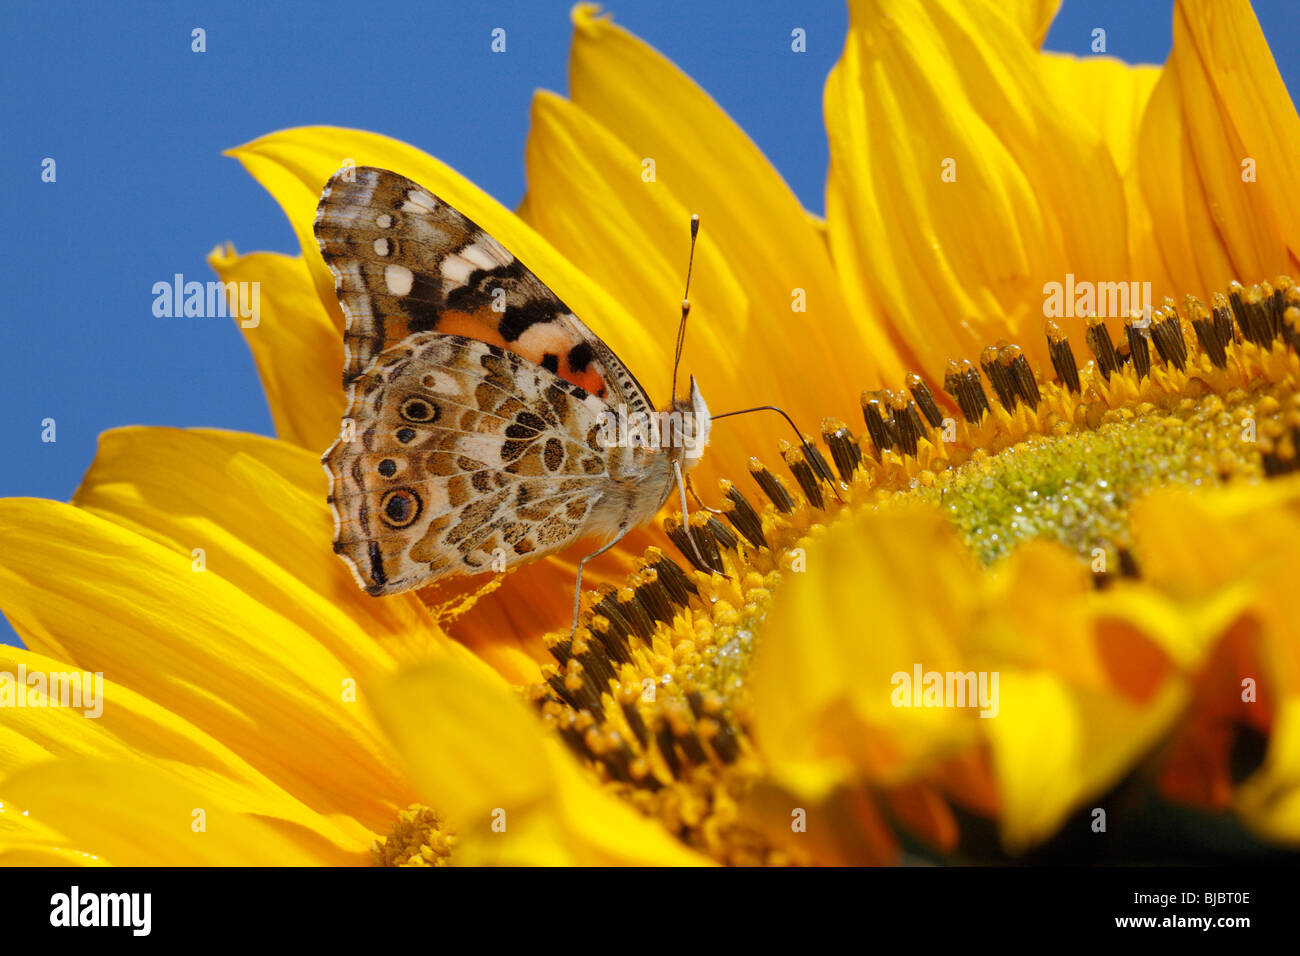 Painted Lady Butterfly (Vanessa cardui) - feeding on nectar from sunflower - Stock Image